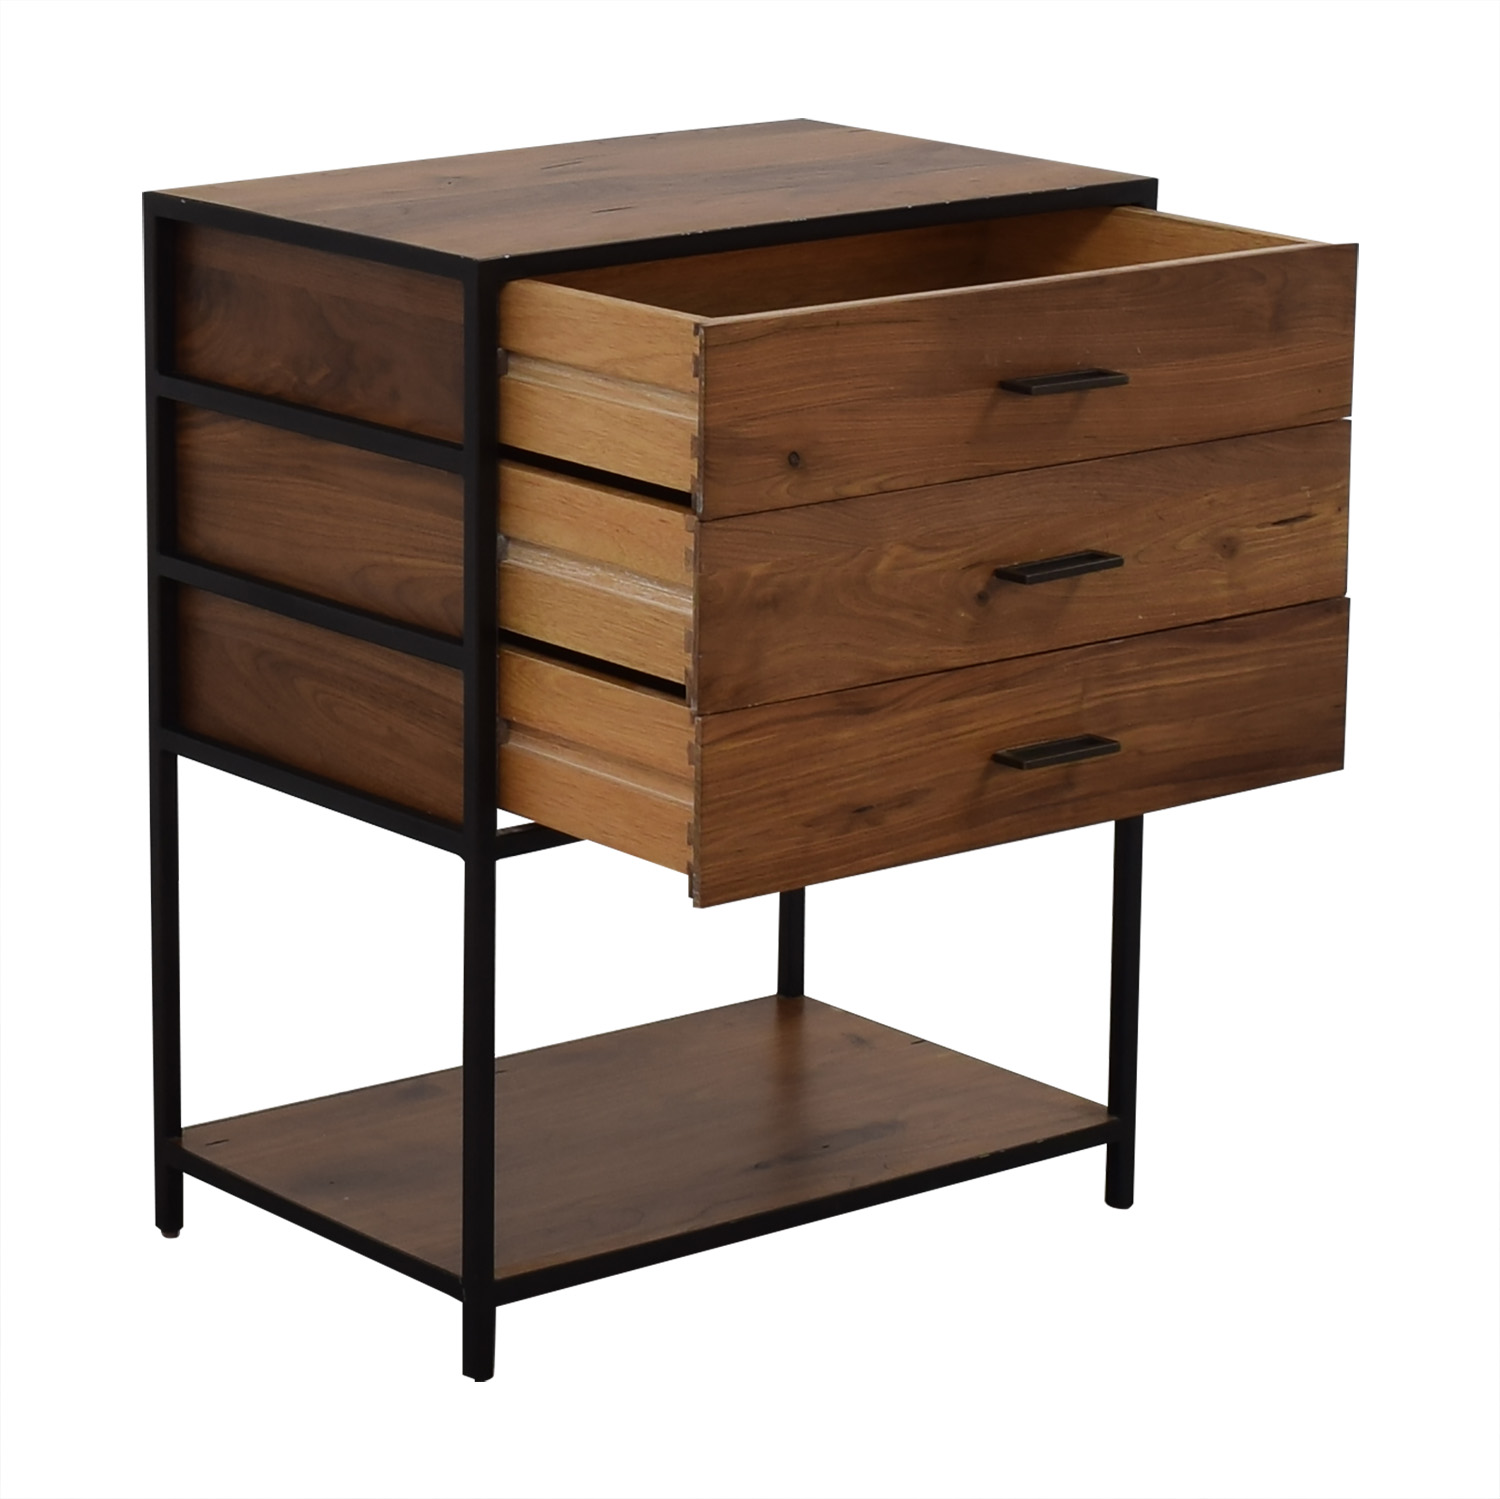 West Elm West Elm Industrial Storage Shelf with Drawers price